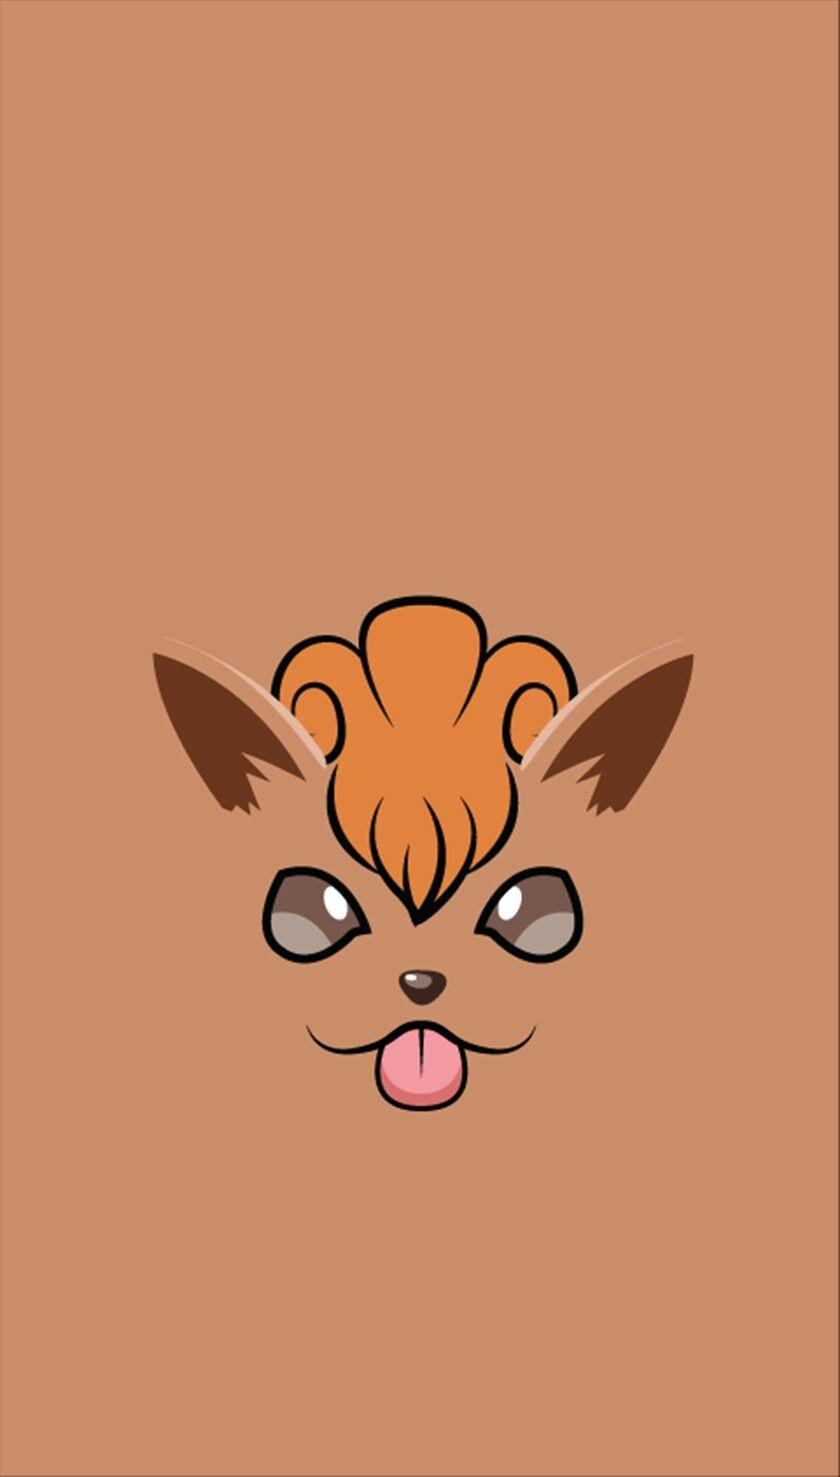 Vulpix wallpaper ❤ | DIY Projects | Pinterest | Wallpaper ...